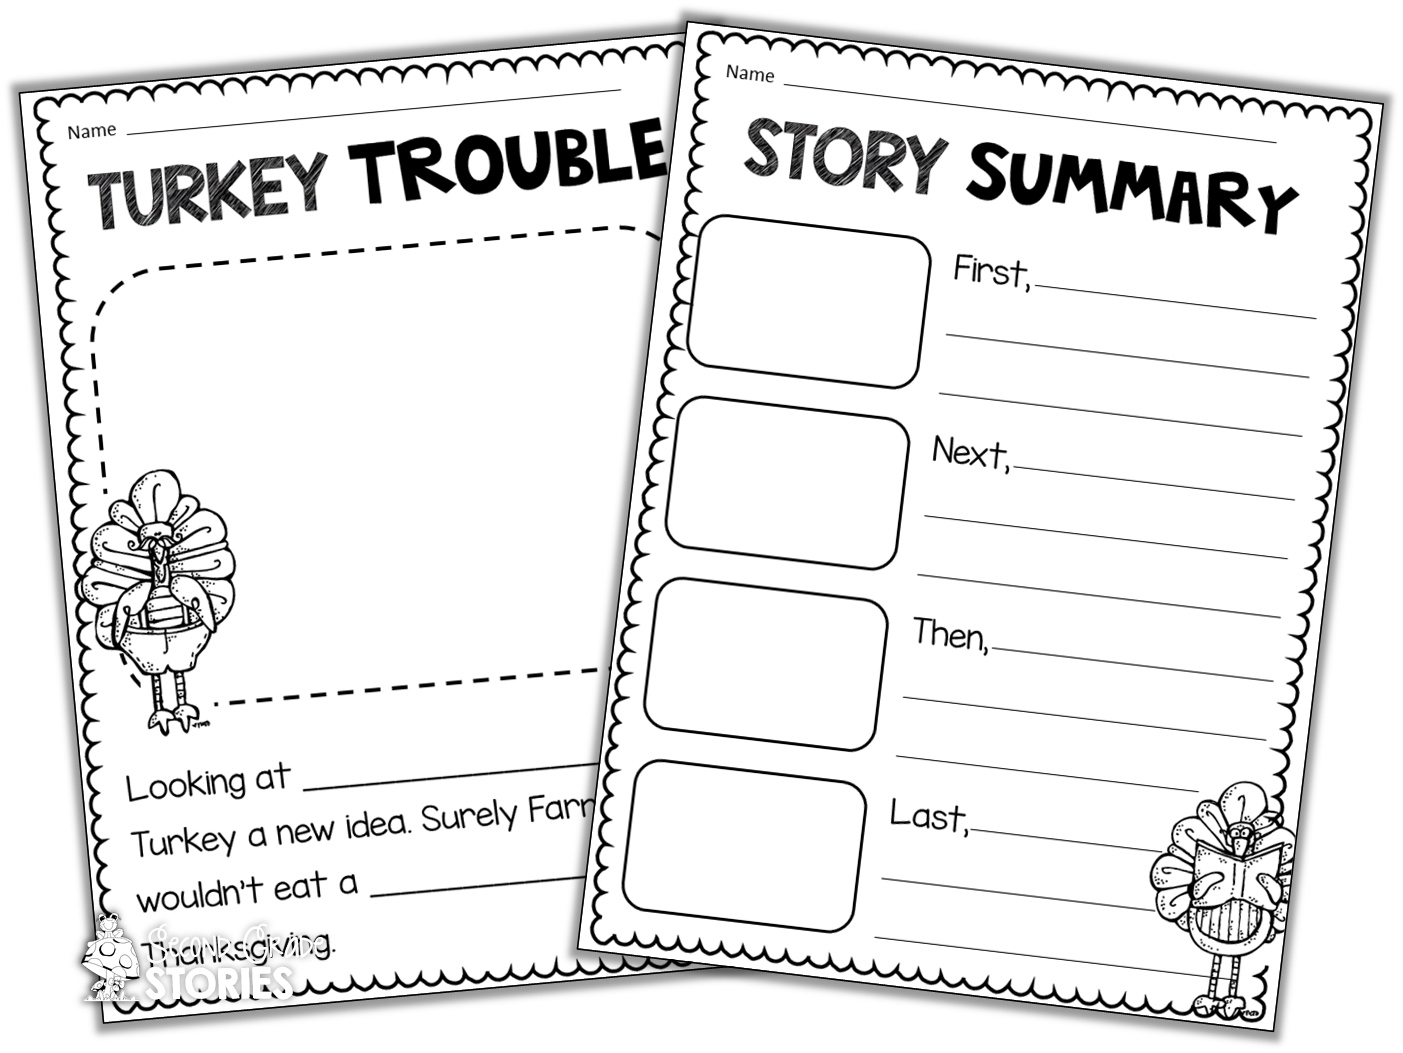 Snowflake clipart for newsletter heading vector royalty free Thanksgiving Reading Fun - Second Grade Stories vector royalty free